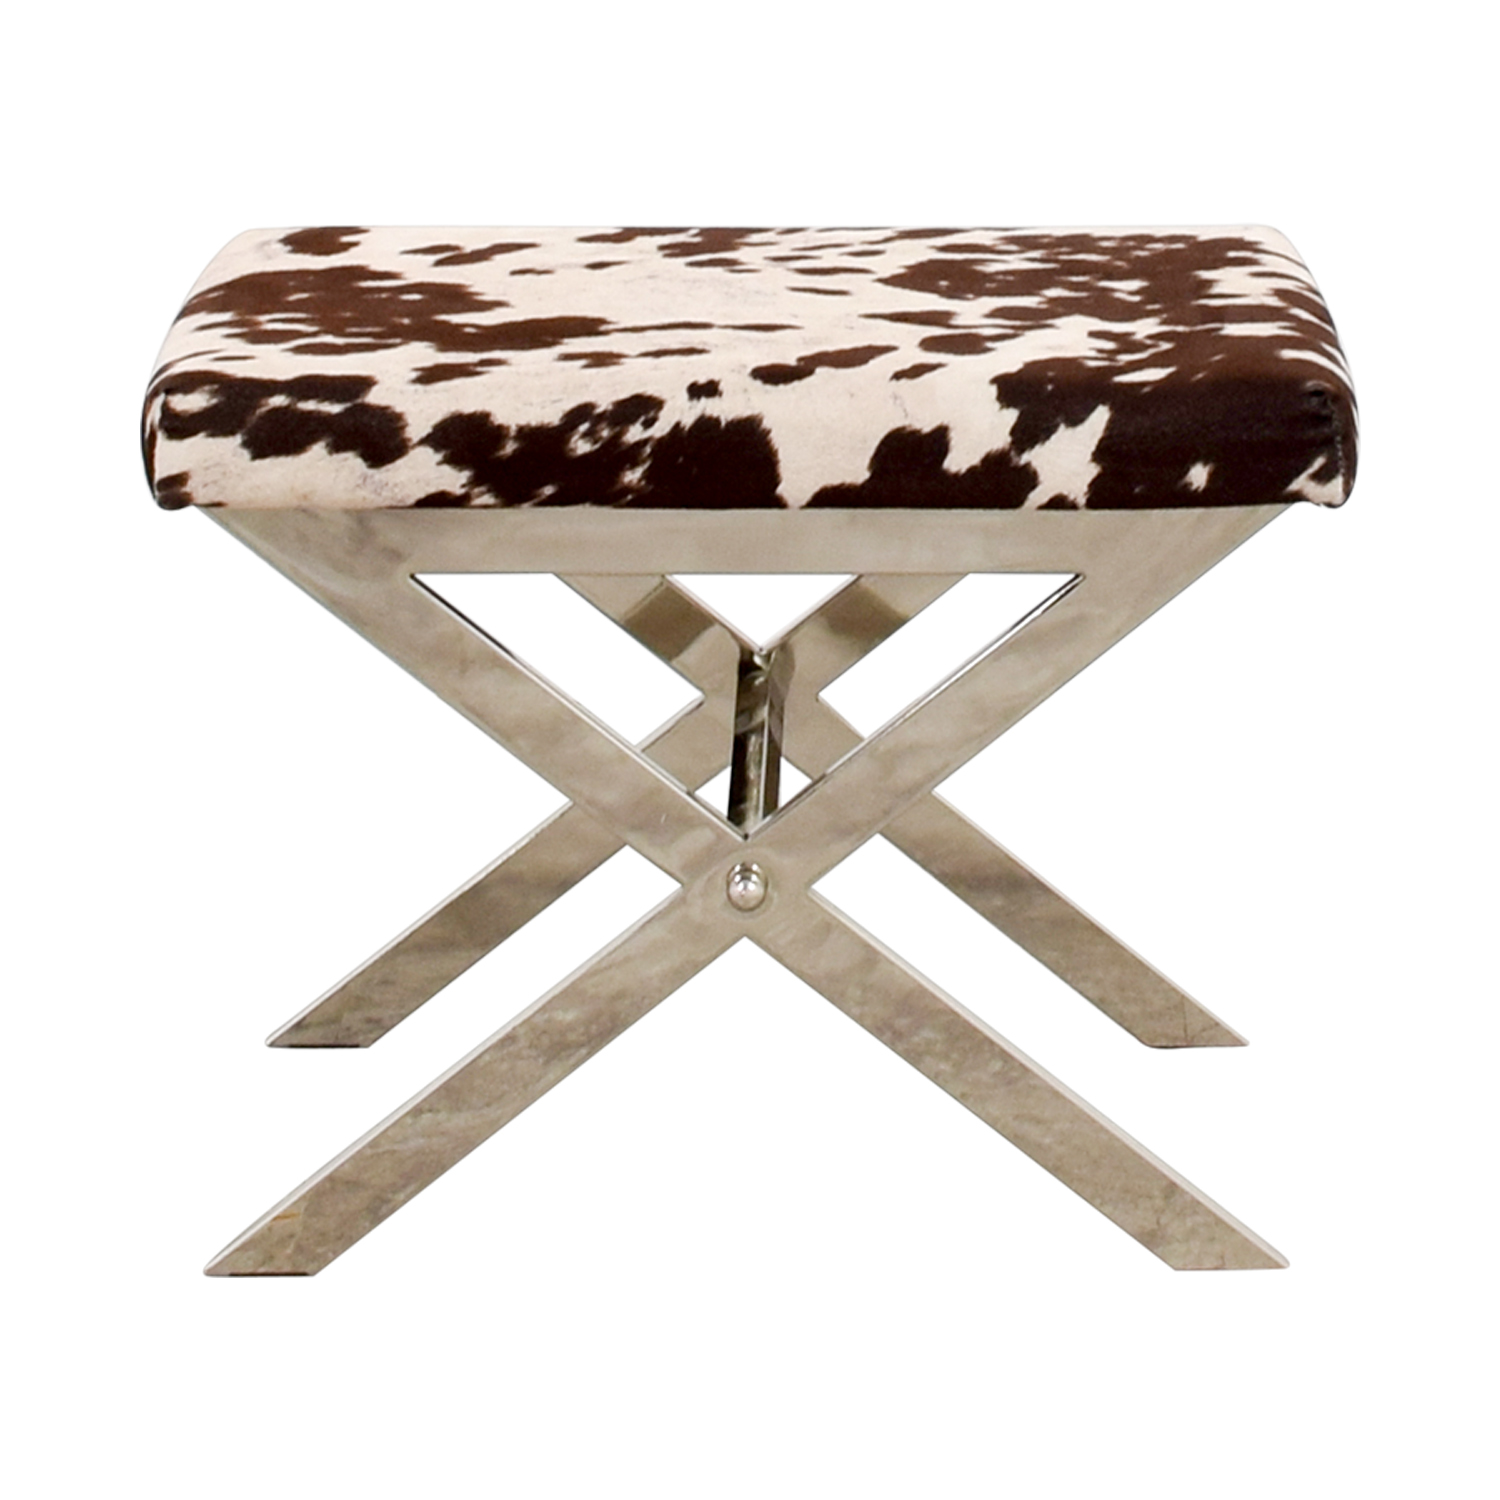 Black and White Cow Print Stool / Stools